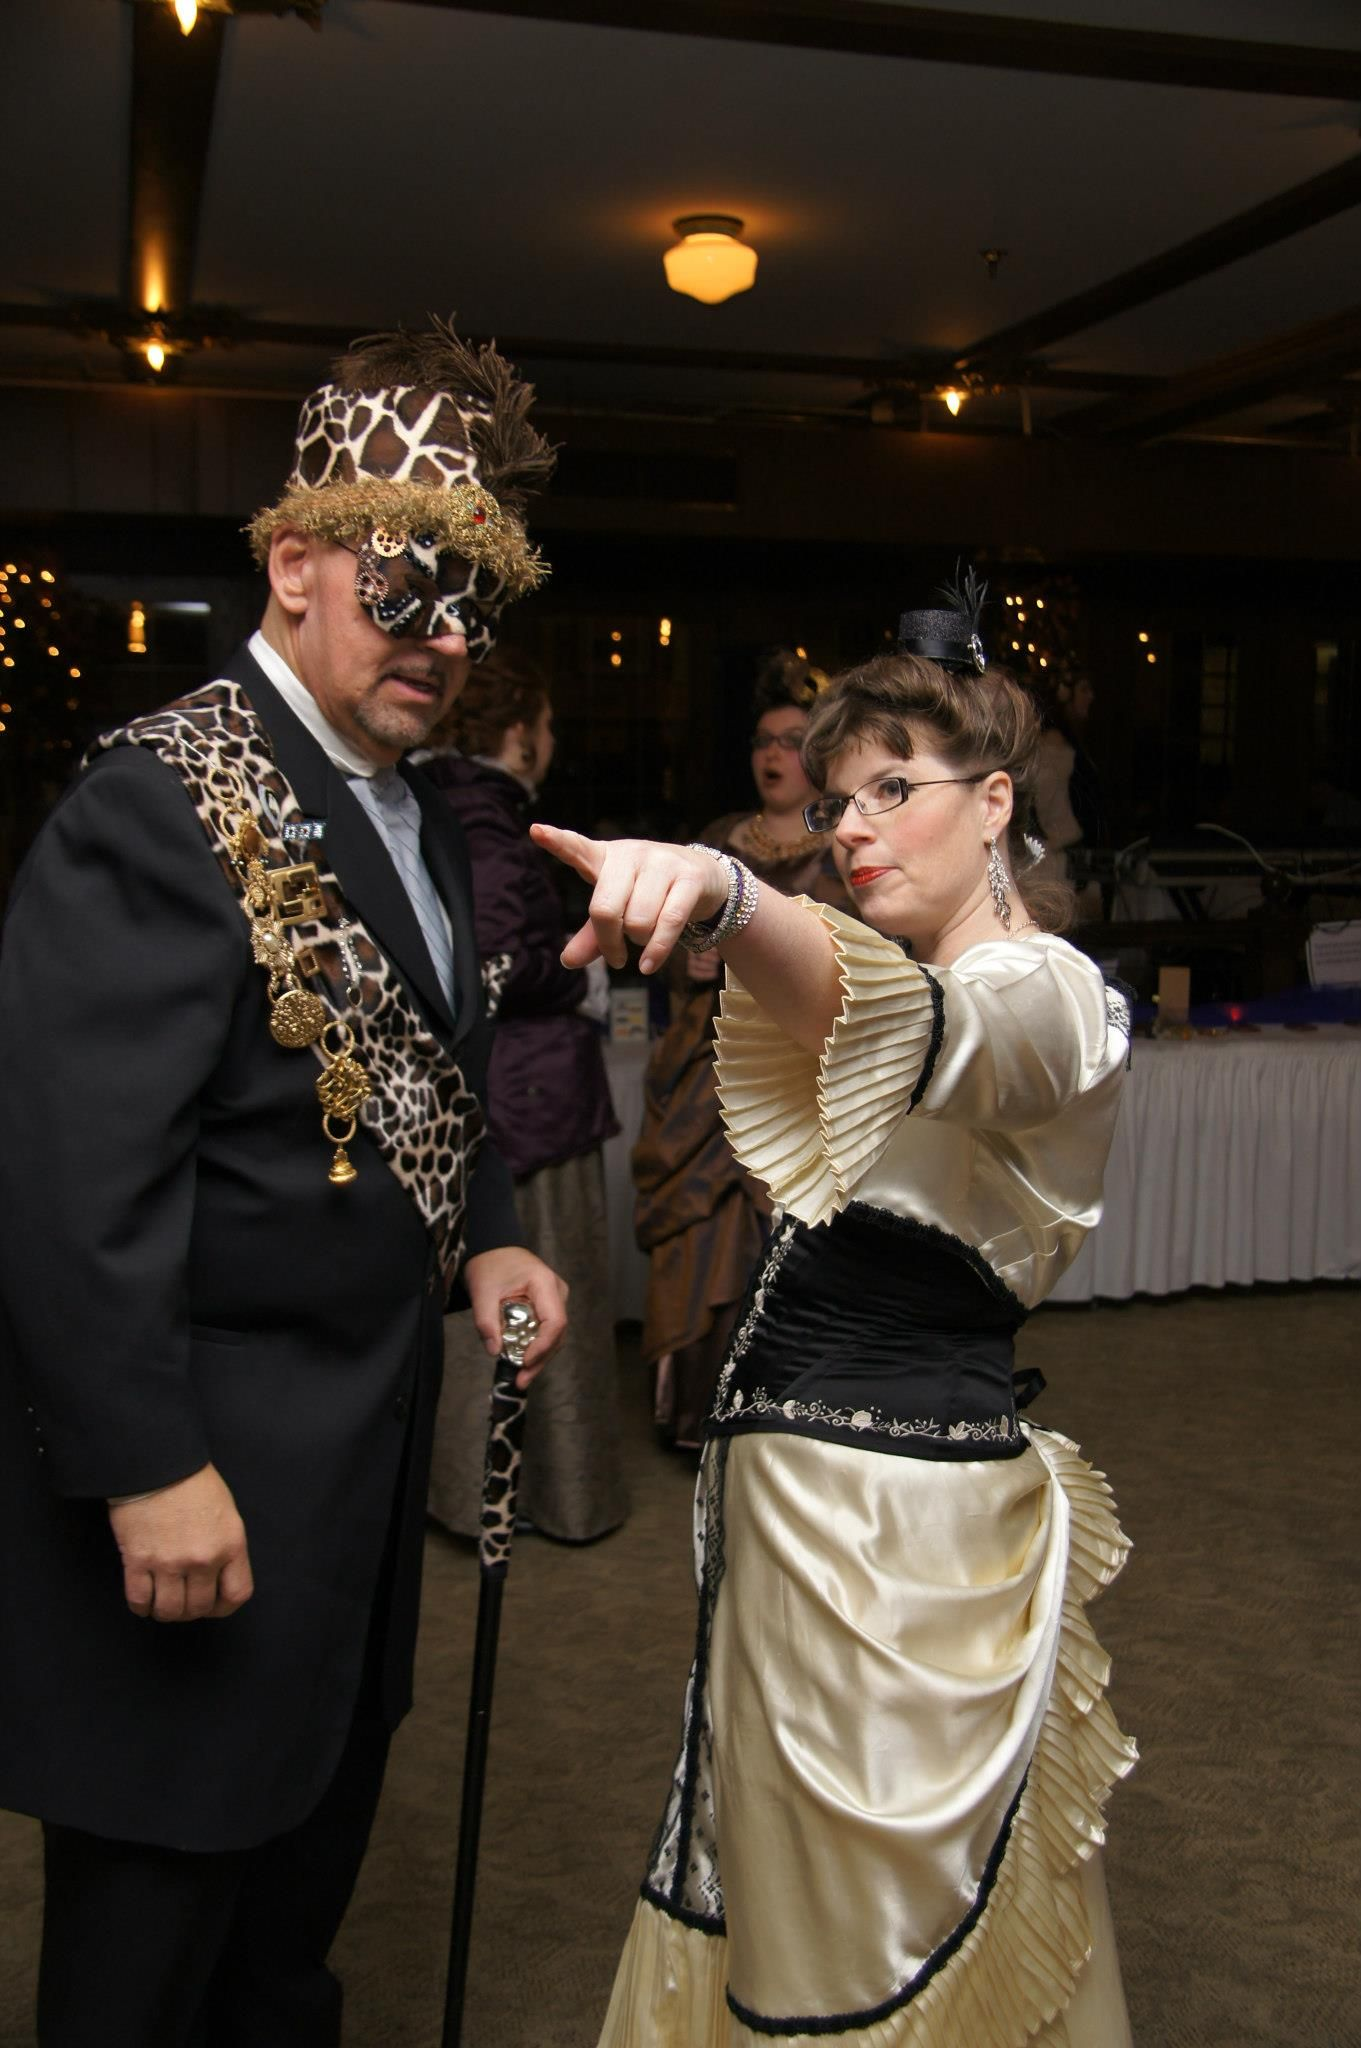 I hosted a Steampunk ball! Photo links to my blog, wherein I wax eloquent about my steamy, seedy adventure. Photo by Brenda Havens. #steampunk